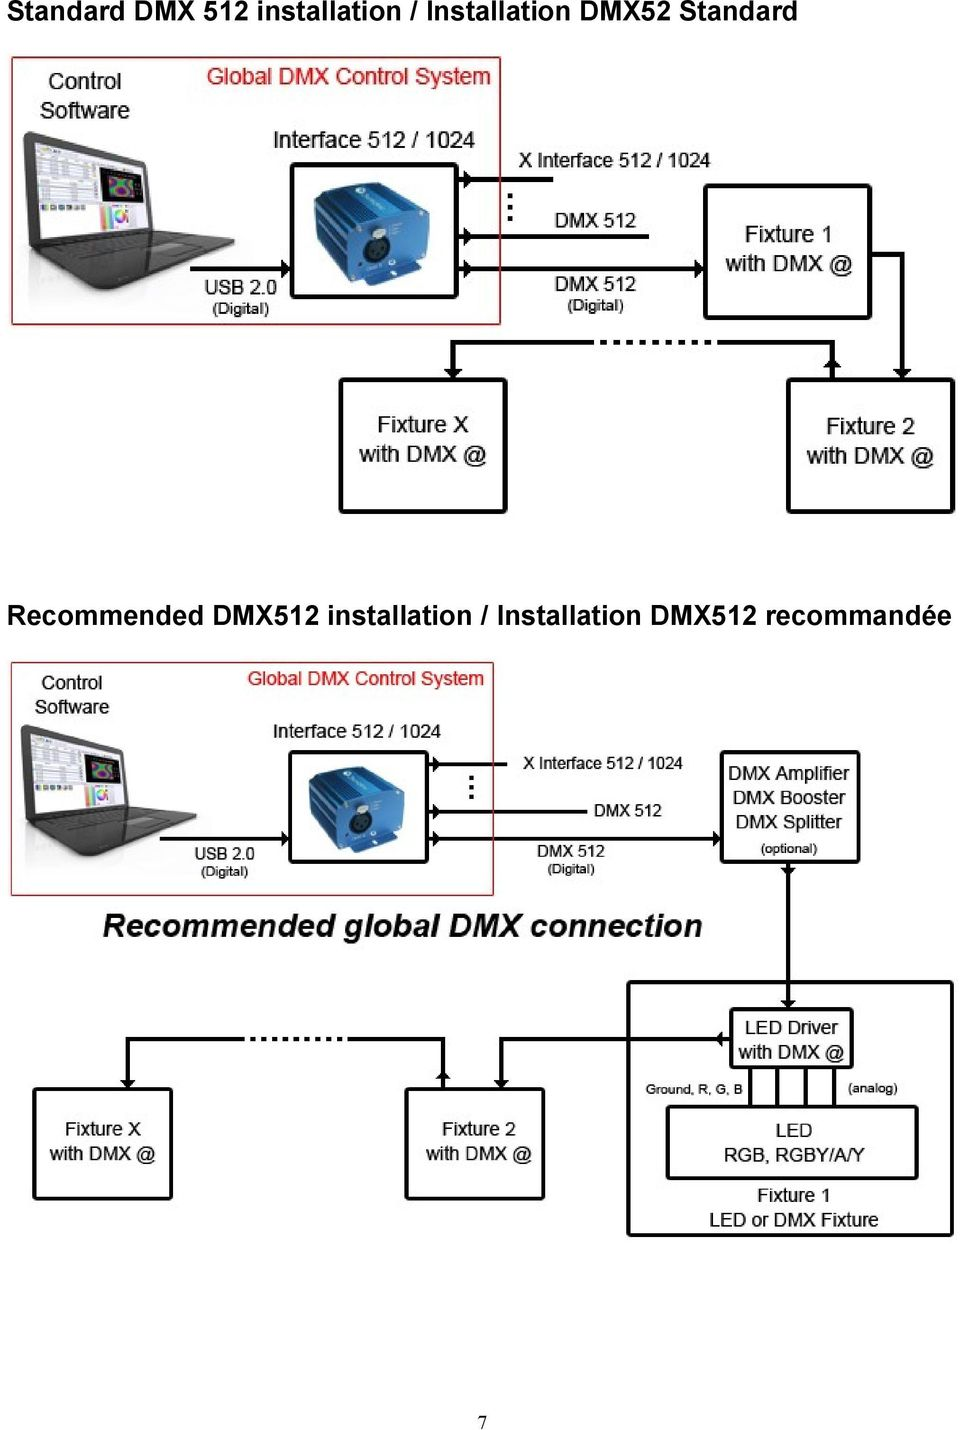 Recommended DMX512